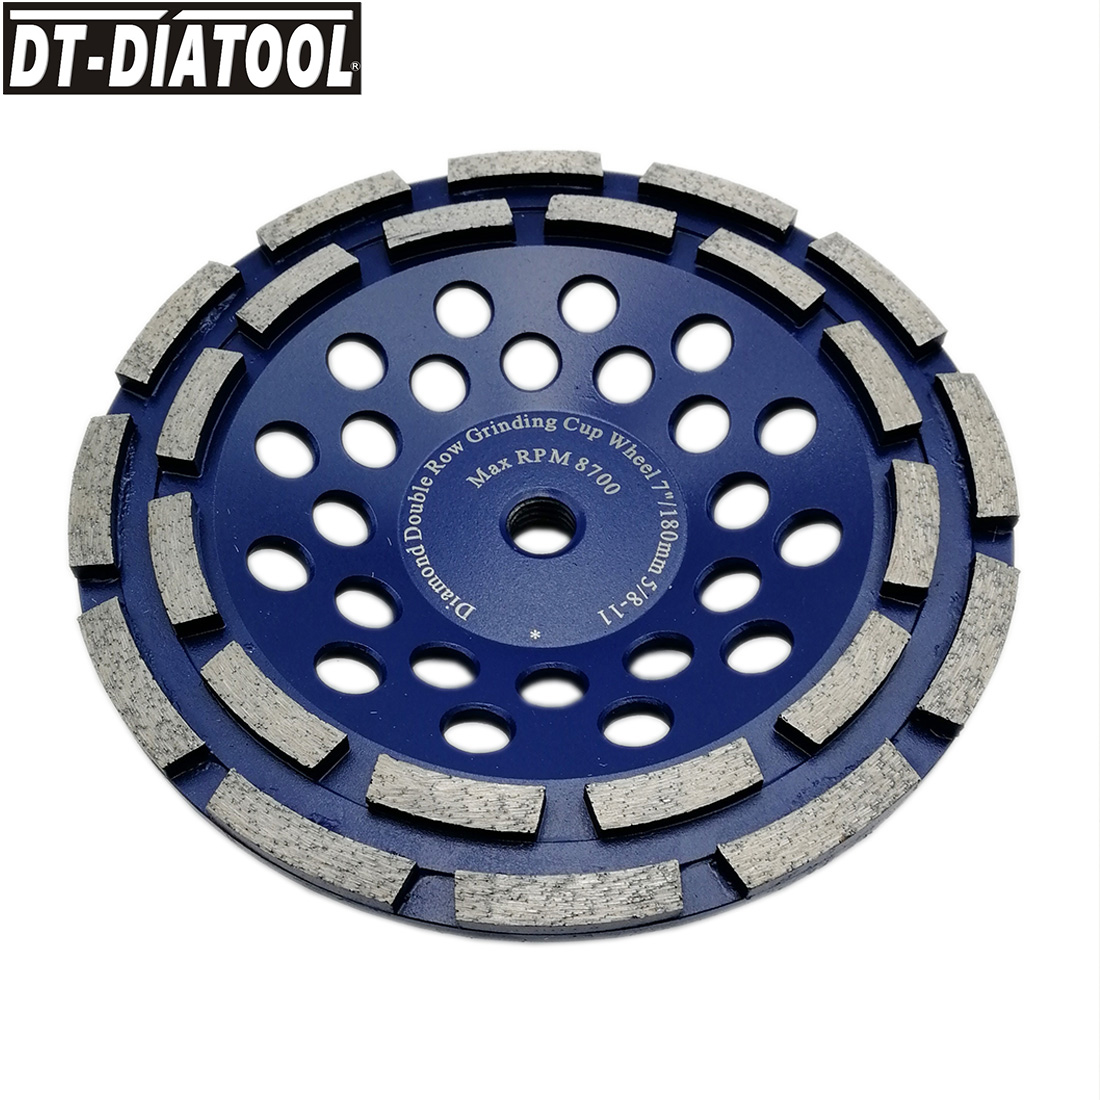 DT-DIATOOL 1pc Premium Double Row Diamond Grinding Cup Wheel 5/8-11 thread for Concrete Brick Hard Stone Granite Dia 7inch/180mm dt diatool 2pcs dia 7 double row diamond grinding cup wheel with 5 8 11 thread for concrete hard stone granite dia 7inch 180mm